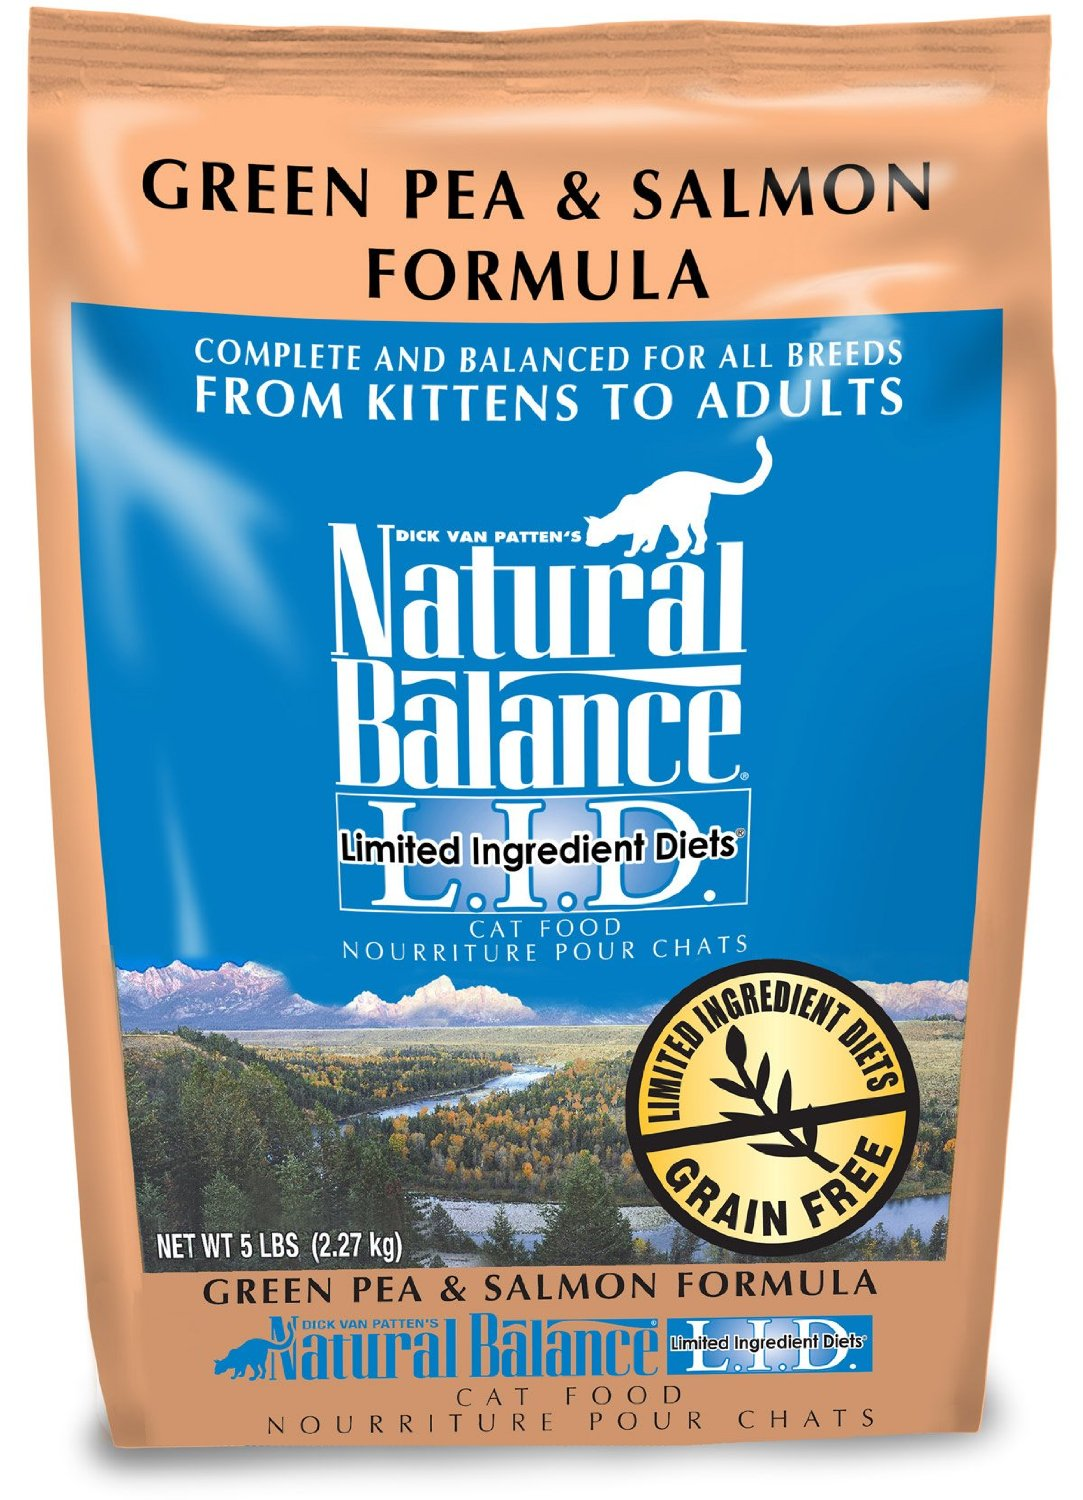 Natural Balance L.I.D. Limited Ingredient Diets Green Pea & Salmon Formula Grain-Free Dry Cat Food 5lbs